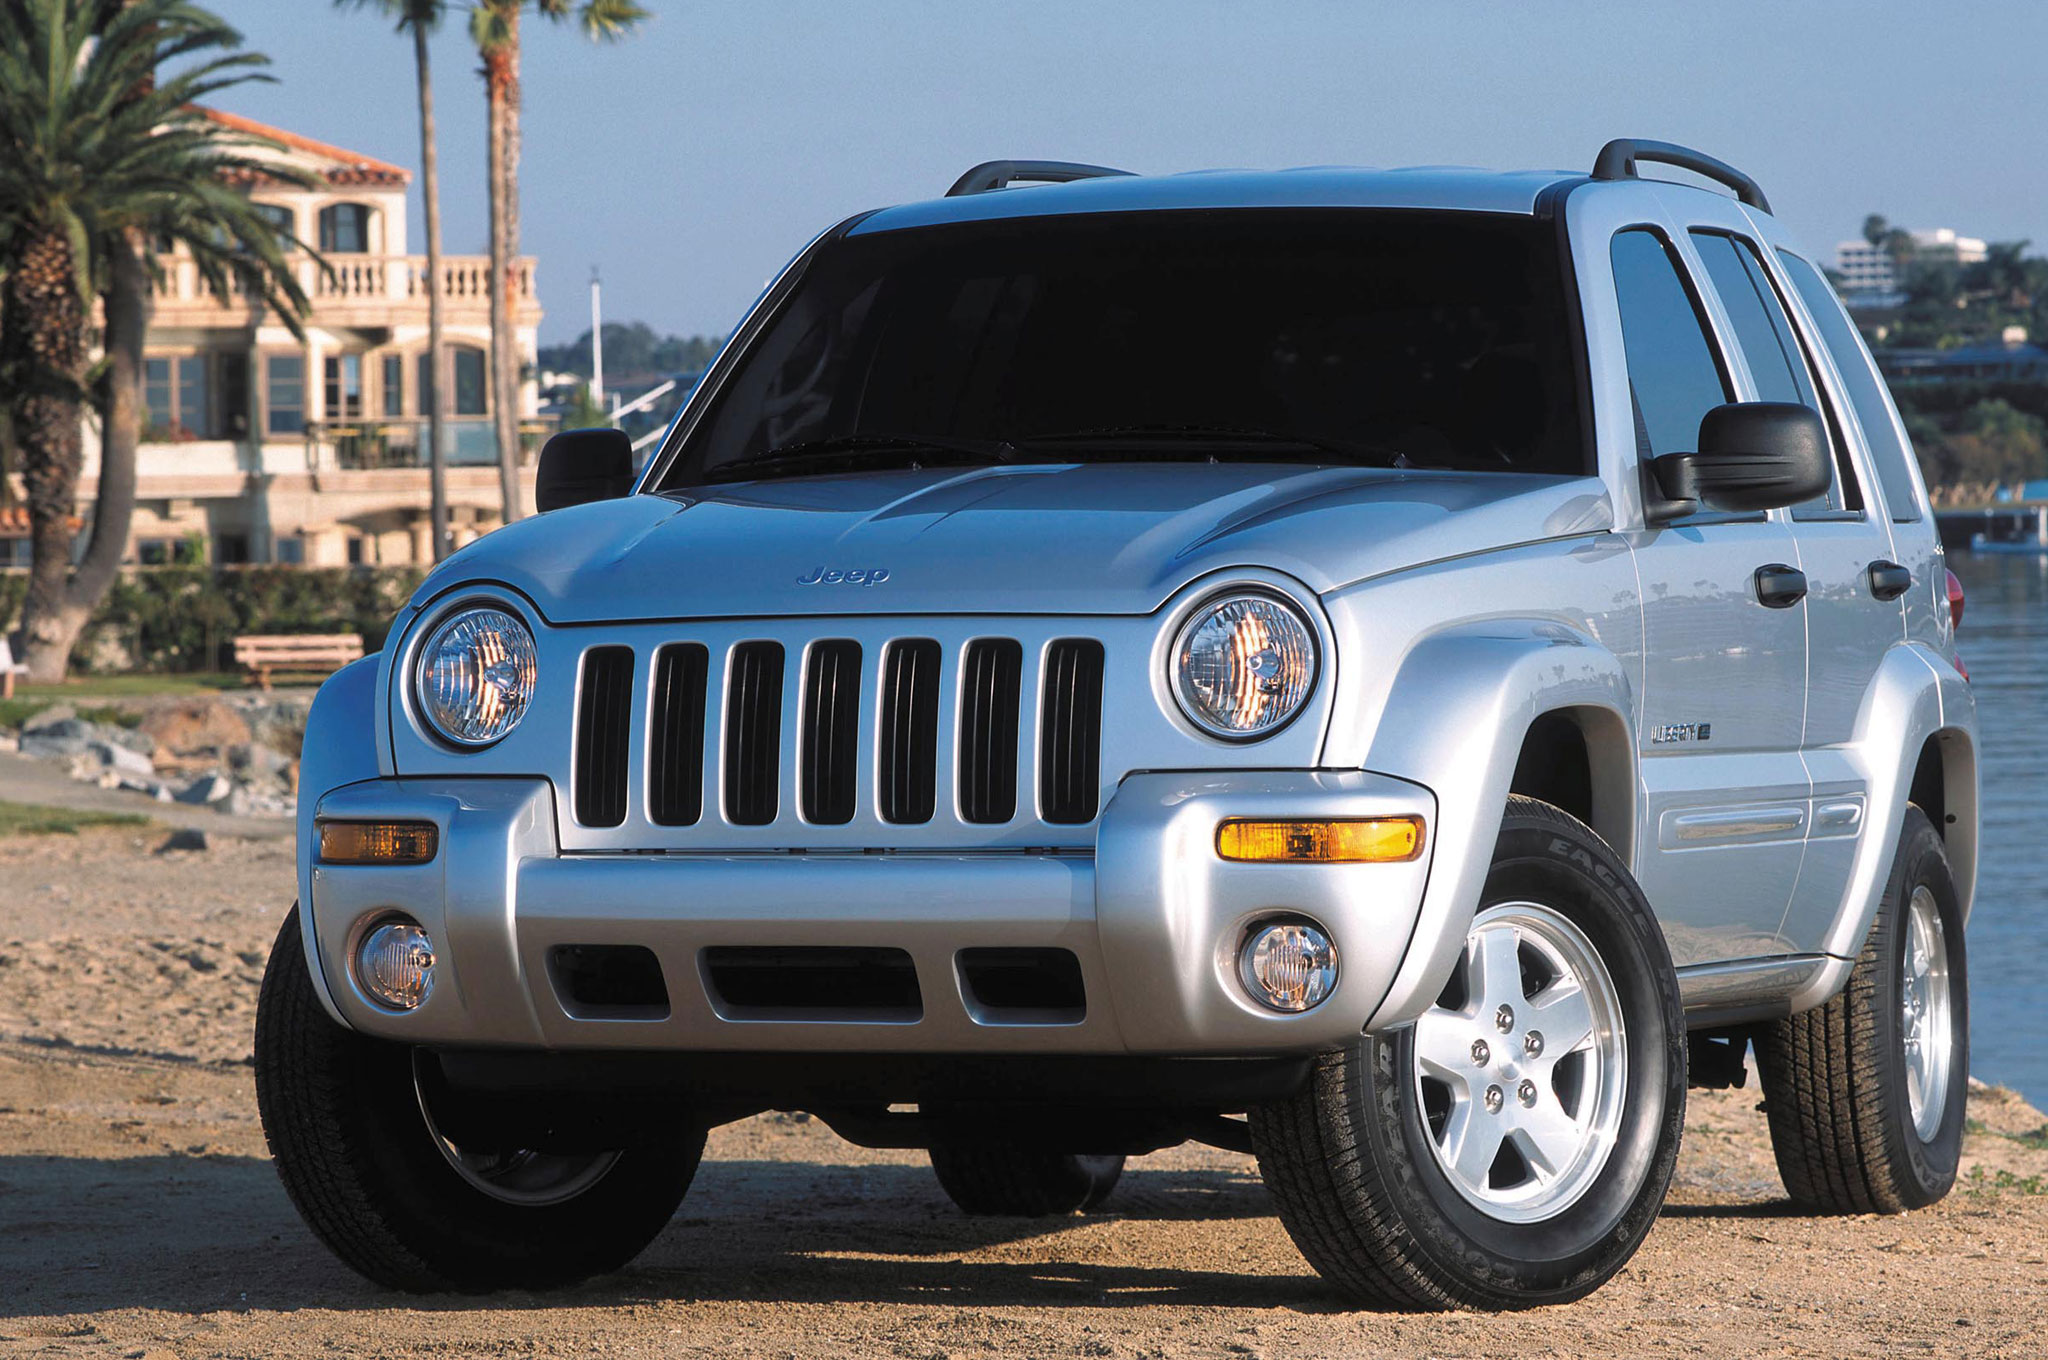 Beautiful NHTSA Orders Recall Of 2.7 Million Jeeps, Chrysler Refuses